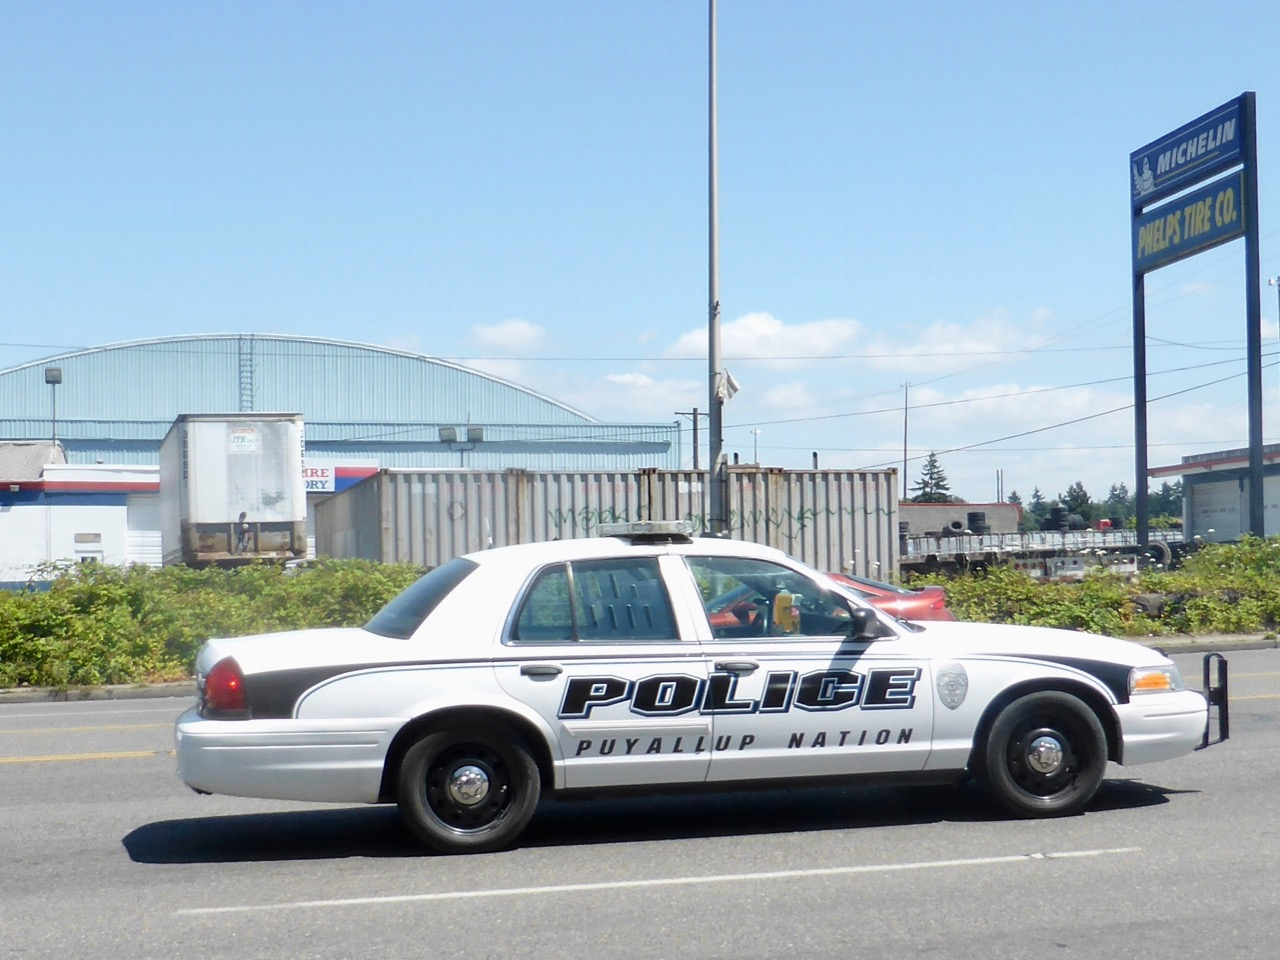 Officer from Puyallup Tribe involved in fatal shooting